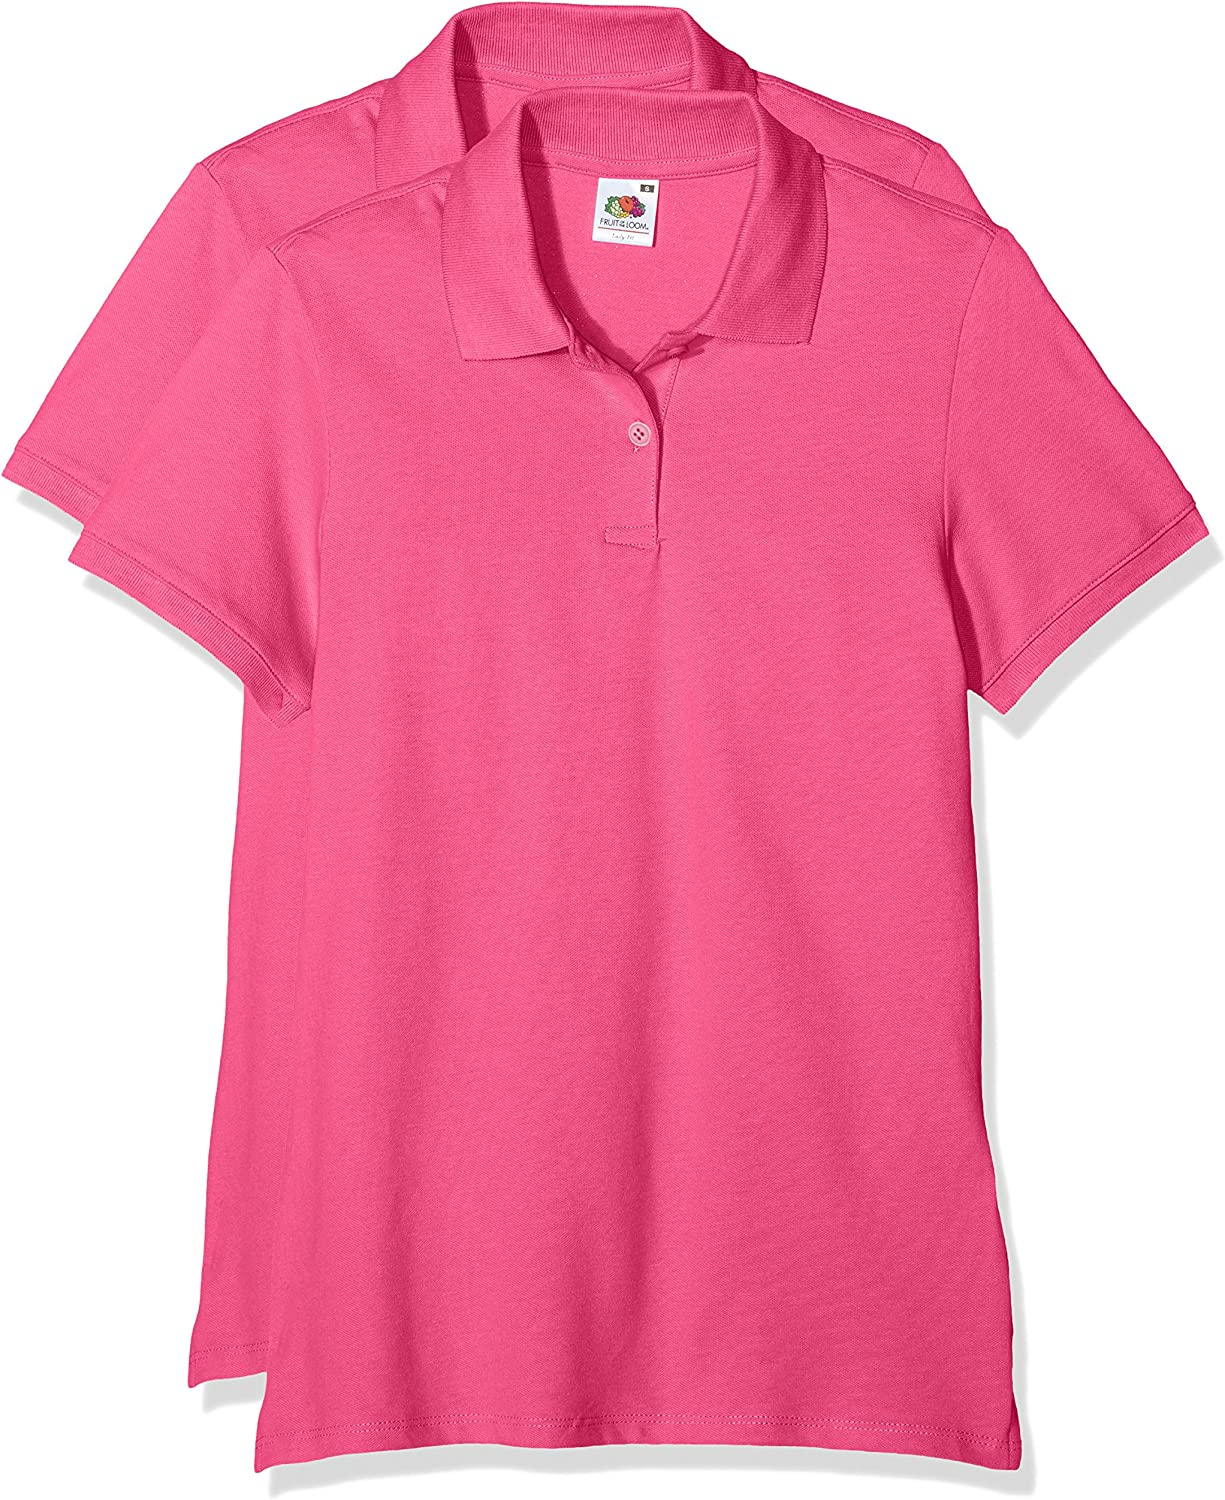 Fruit of the Loom Lady Fit Polo Blusa, Fuchsia, XS para Mujer ...